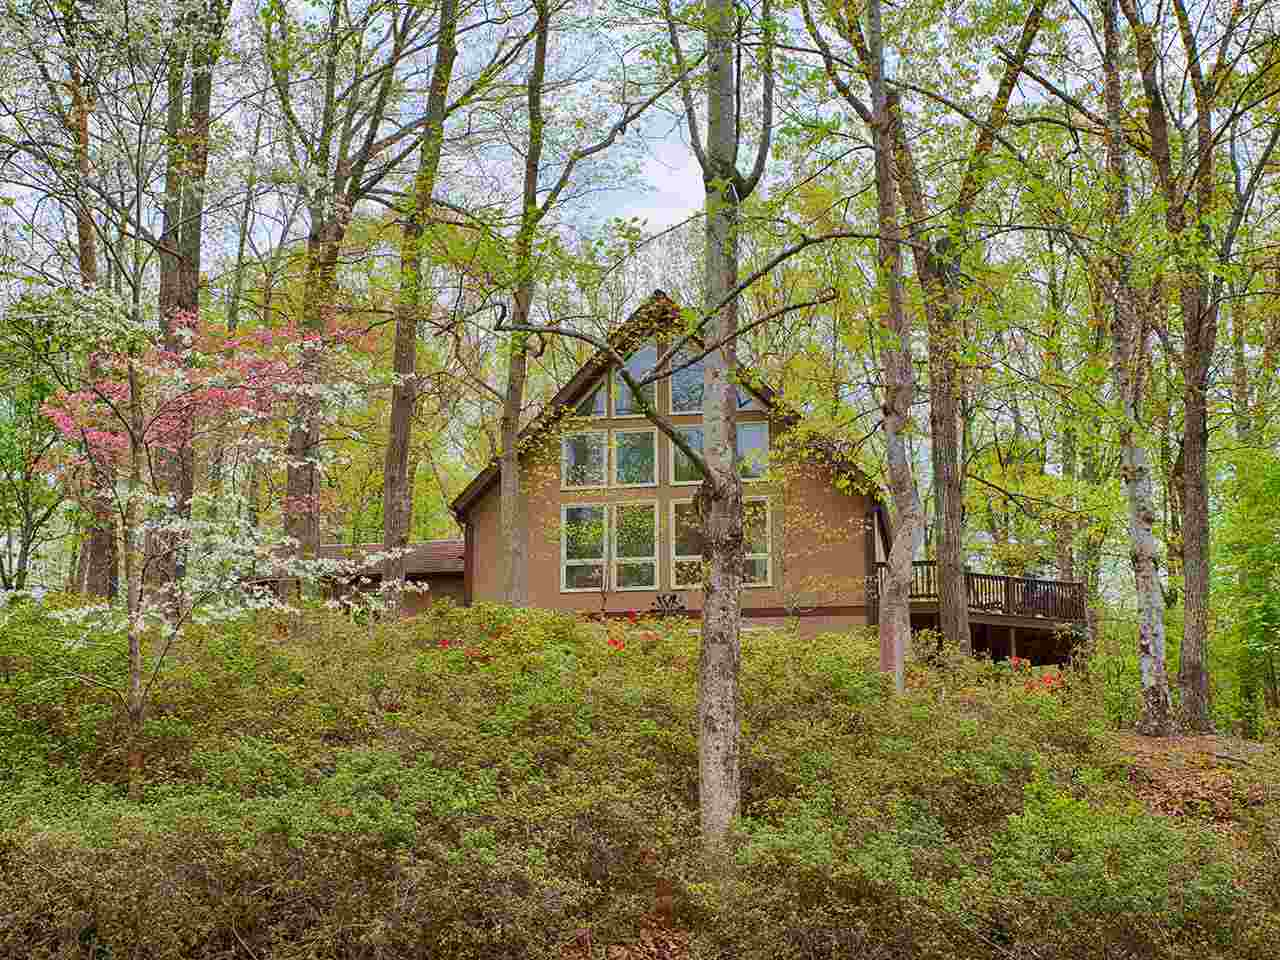 $459,000 - 5Br/4Ba -  for Sale in Key West, Charlottesville